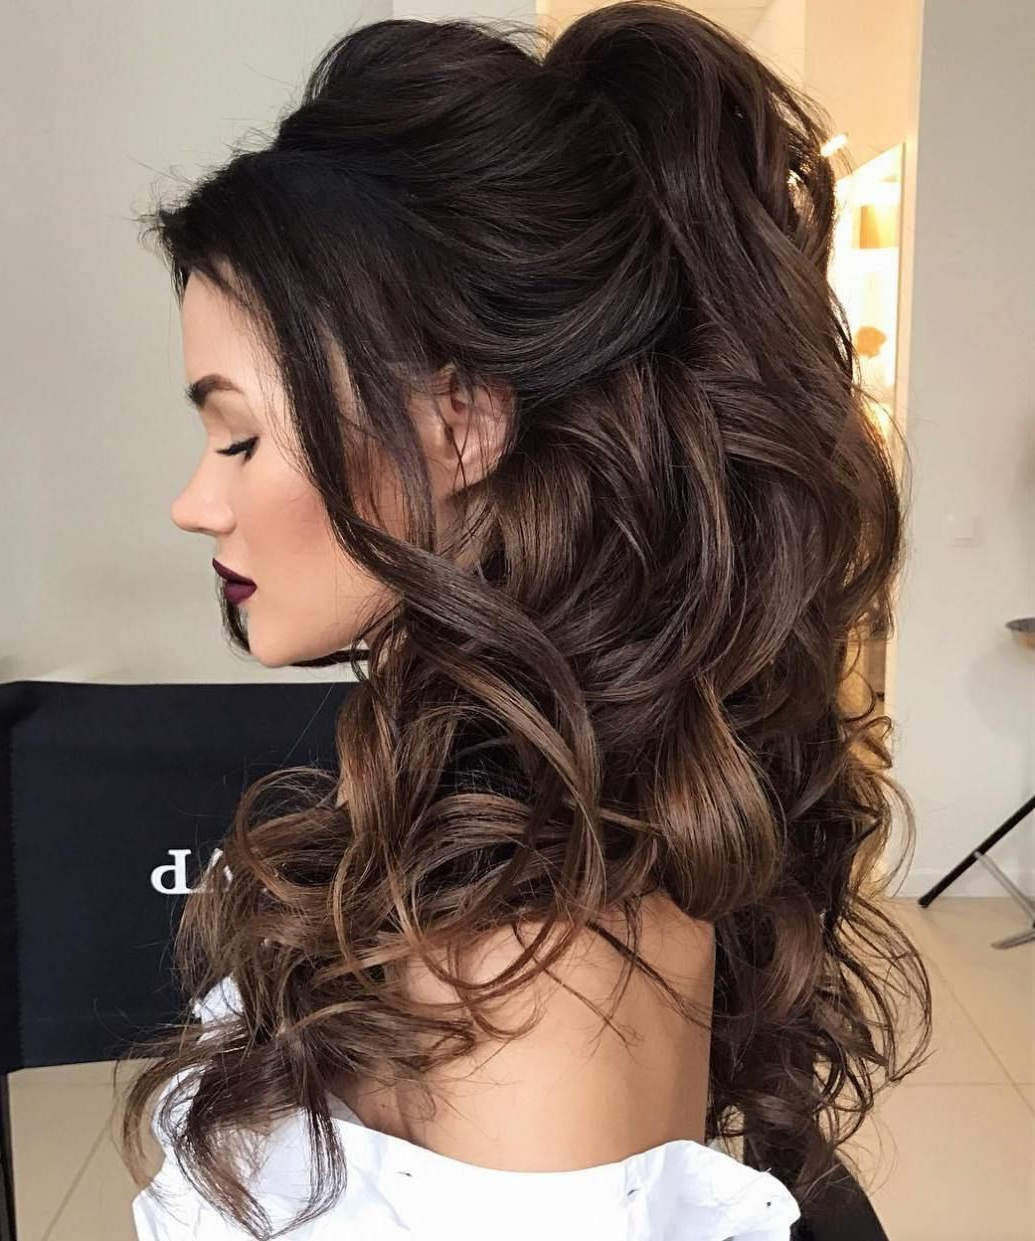 Most Recently Released Voluminous Prom Hairstyles To The Side With Regard To Half Up Half Down Wedding Hairstyles – 50 Stylish Ideas For Brides (View 14 of 20)